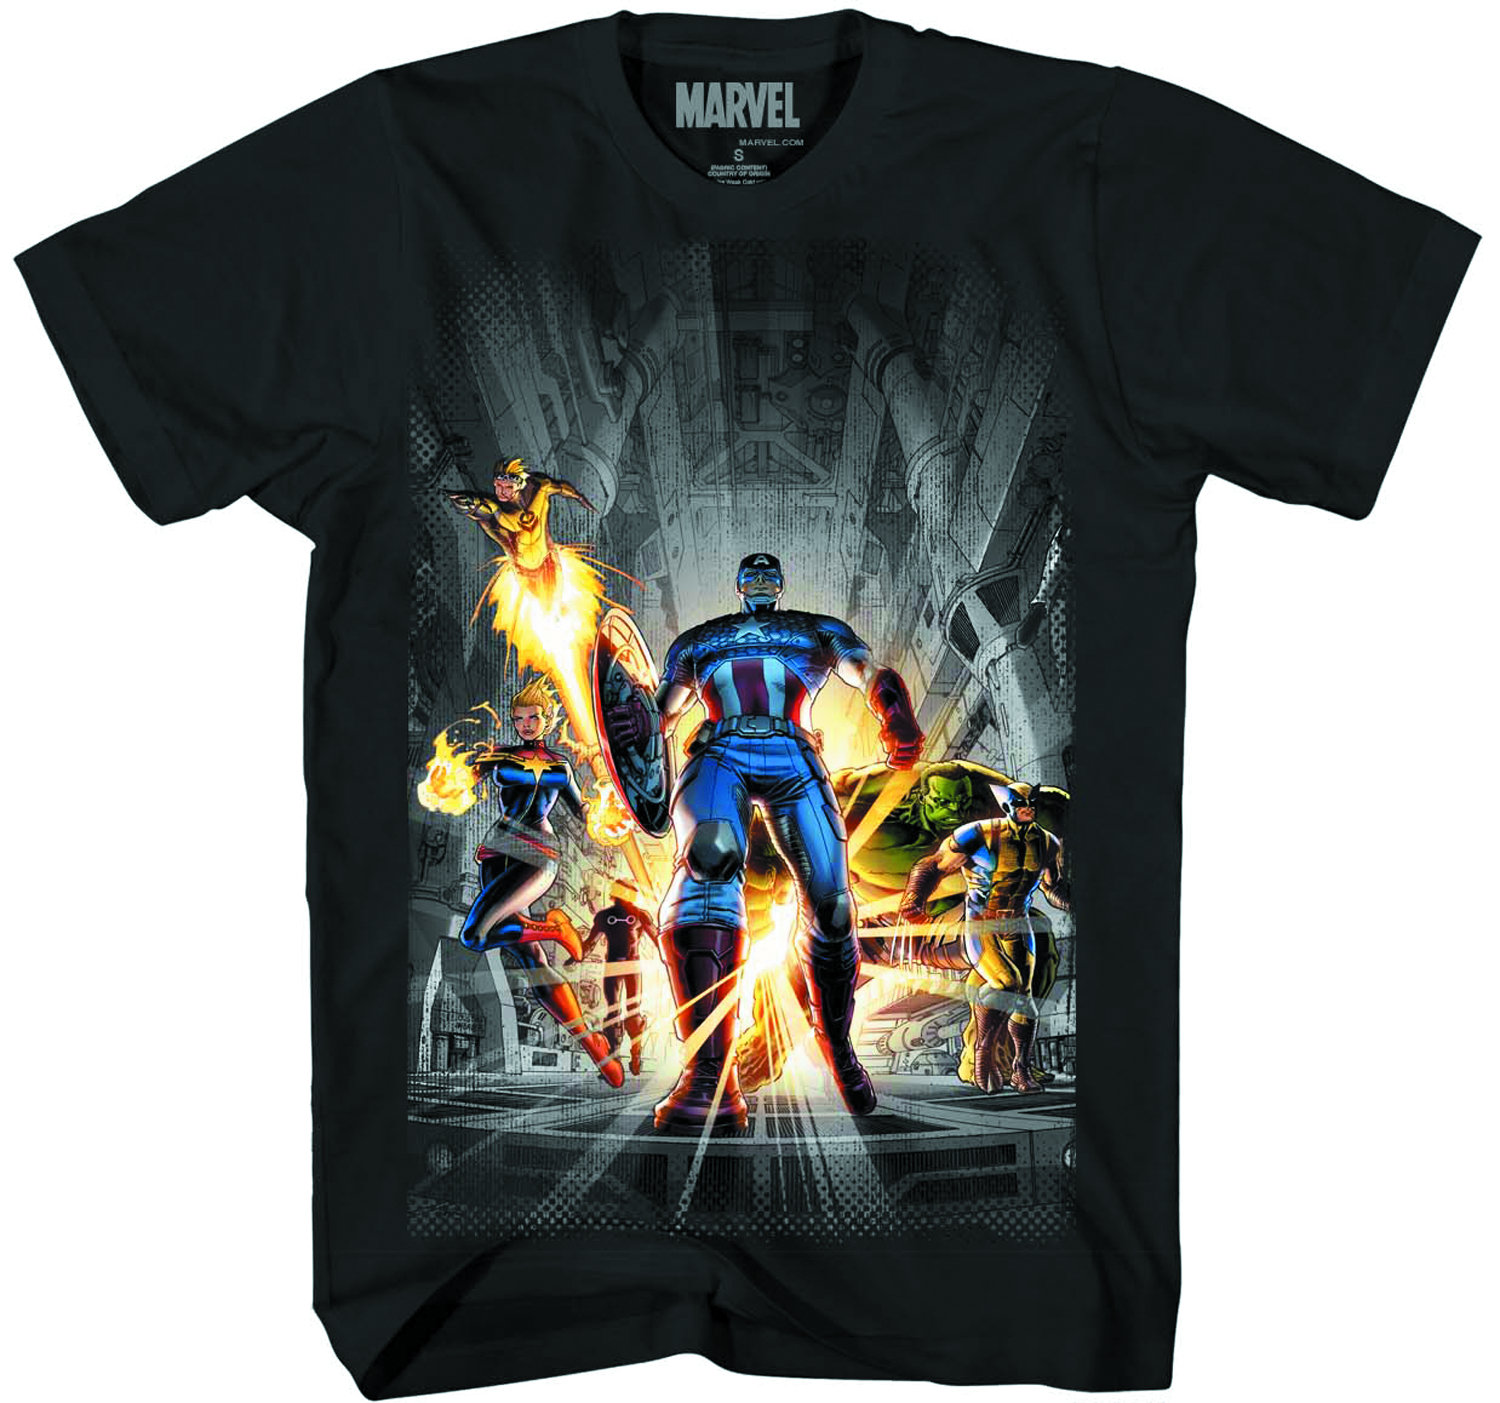 MARVEL HEROES BIG TEAM PX BLK T/S SM